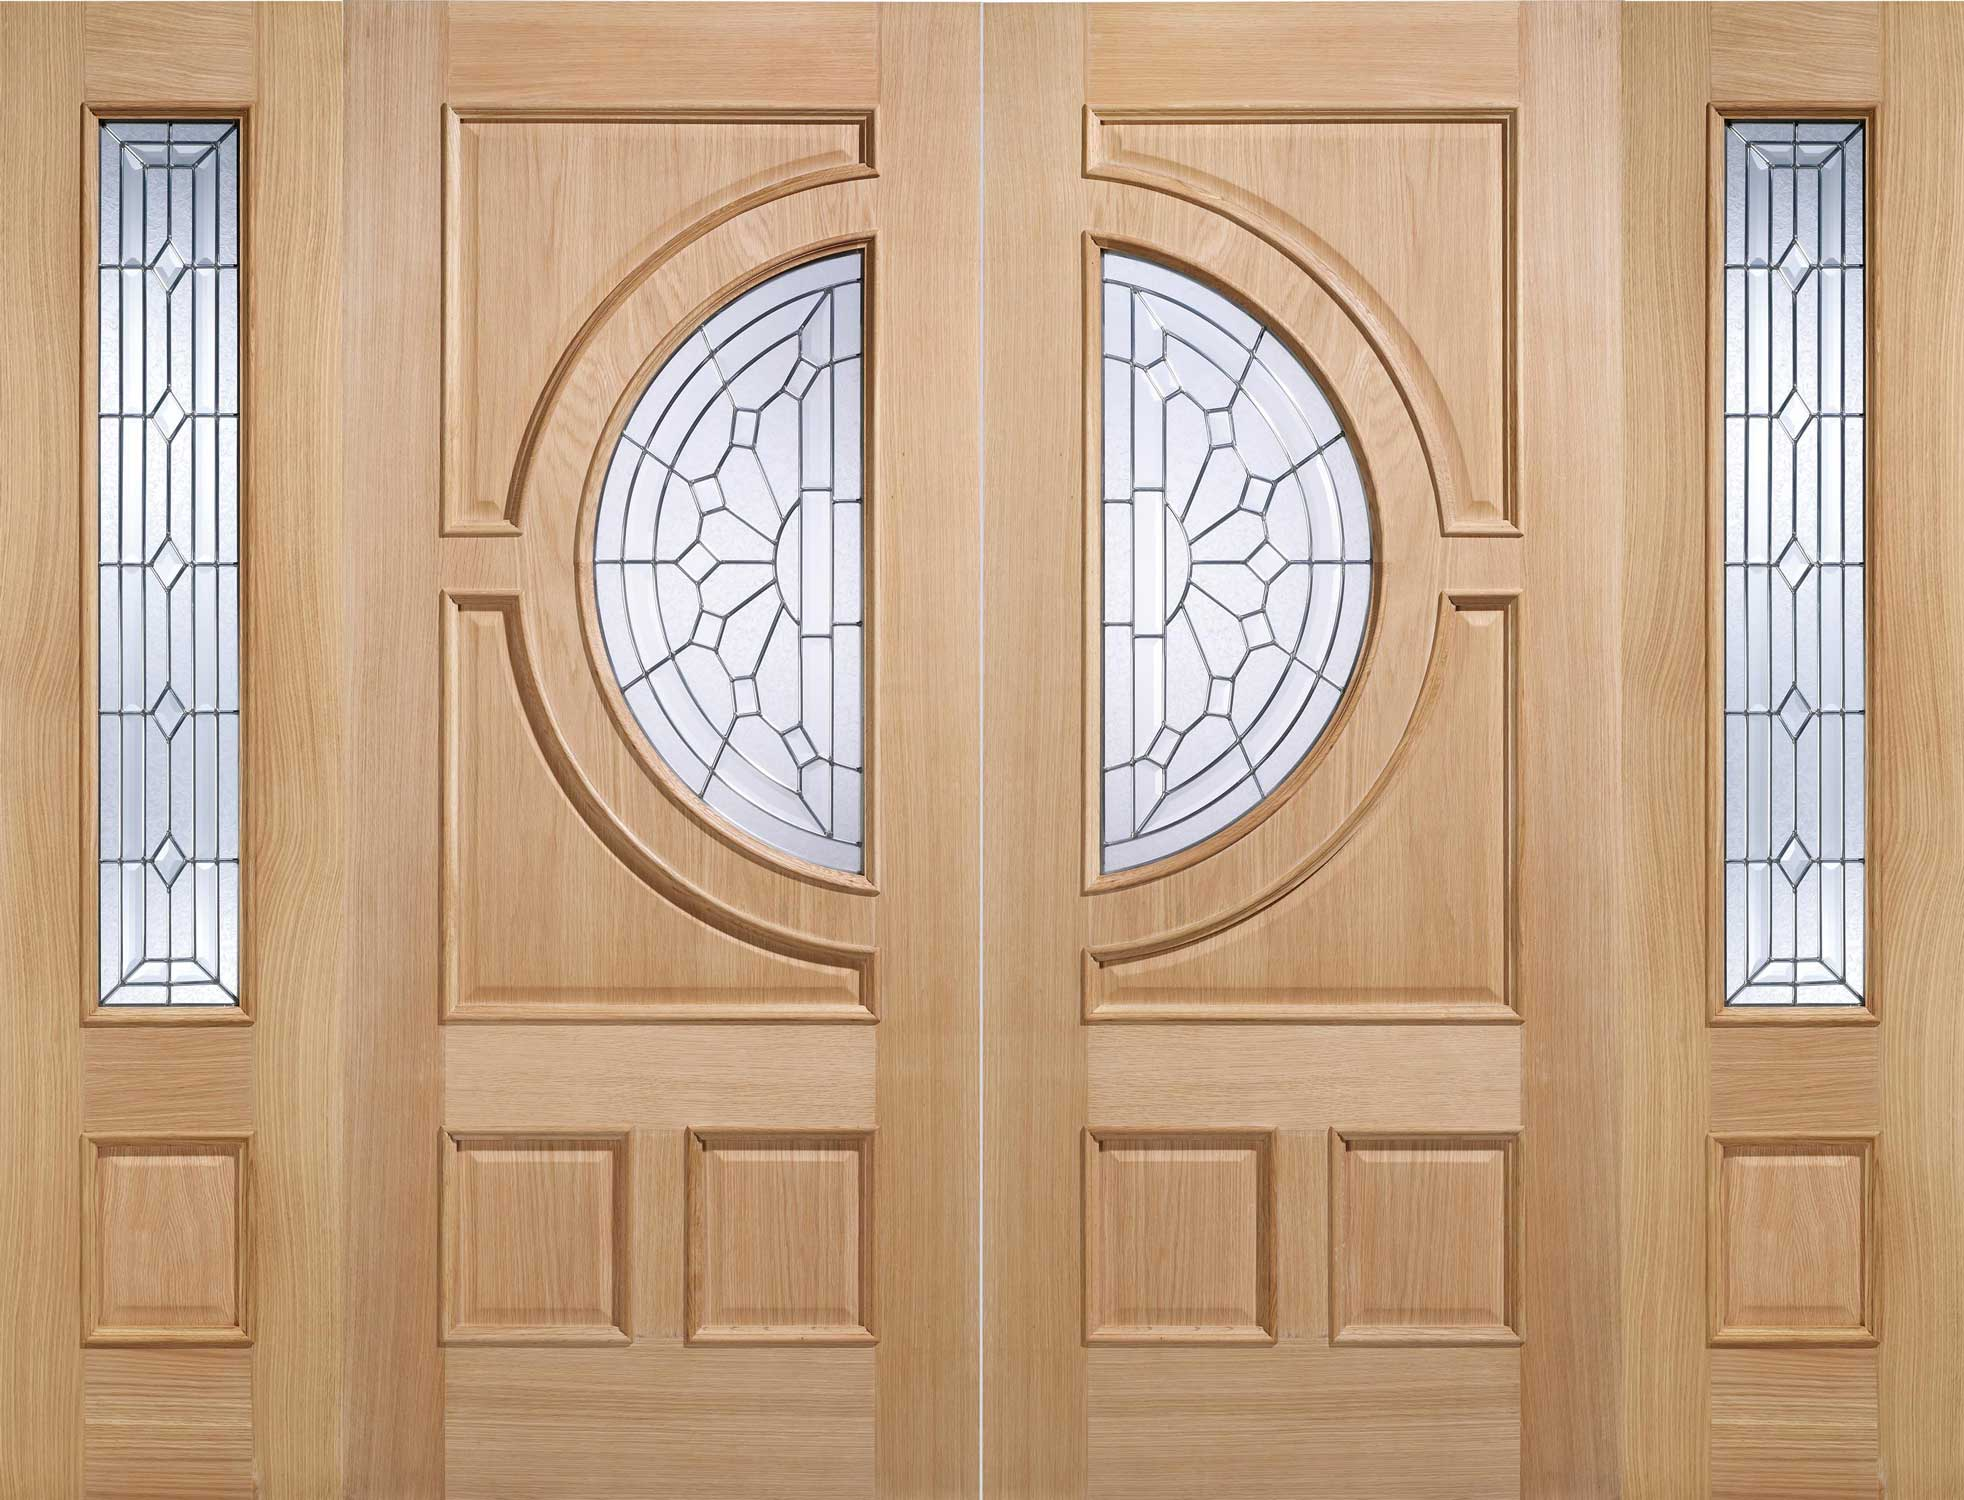 Pair of \u0027Empress\u0027 Doors shown with Sidelights  sc 1 th 196 & Traditional Exterior Oak Doors | Exterior Glazed Oak Doors | Oak ...